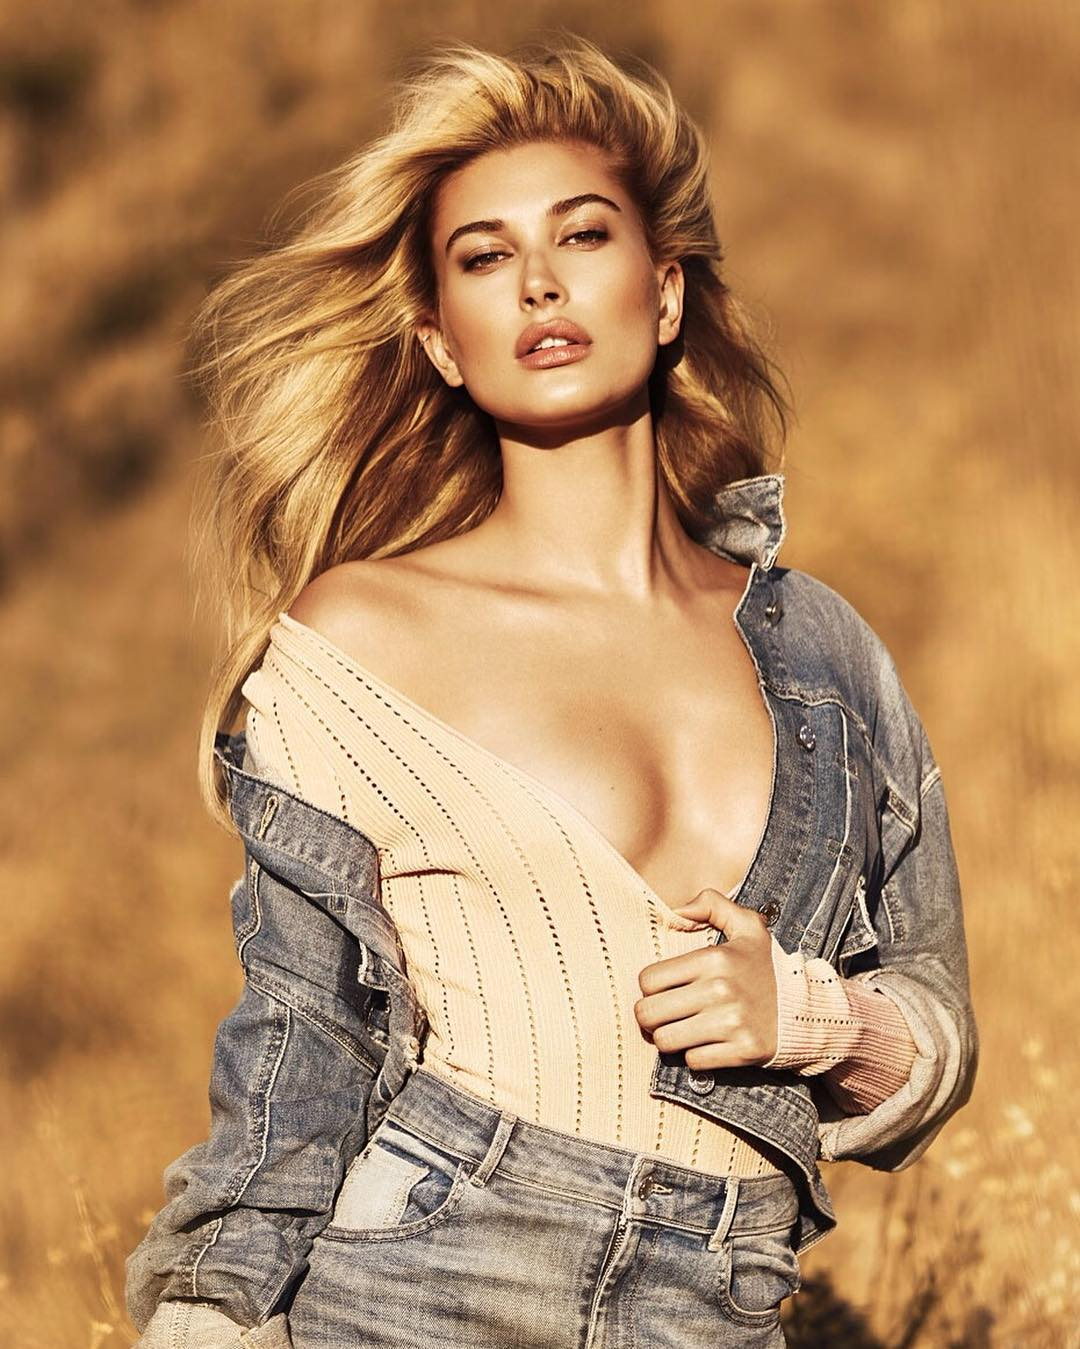 pictures Hailey baldwin for guess